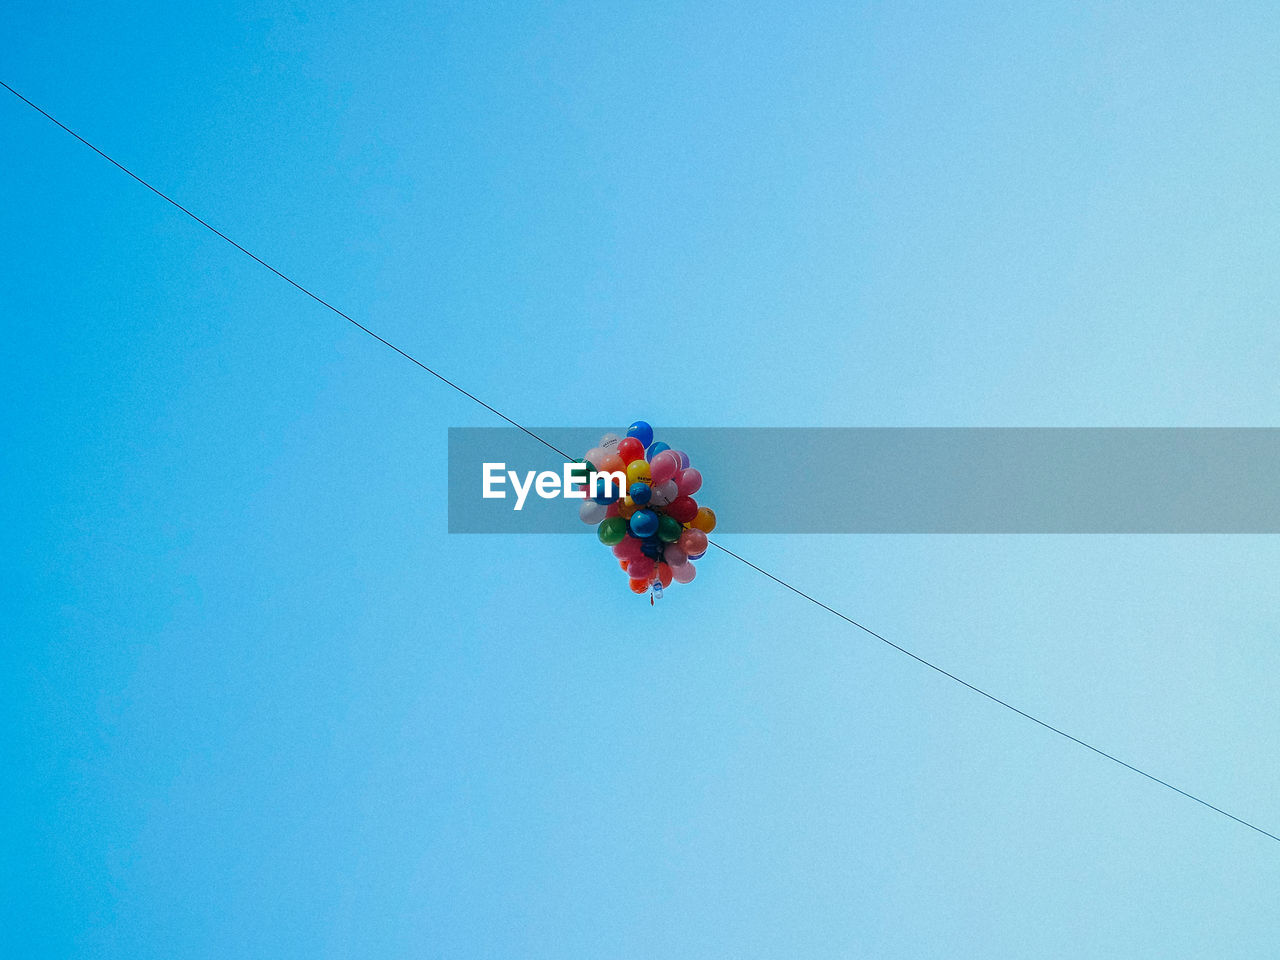 Low Angle View Of Balloons Hanging On String Against Blue Sky